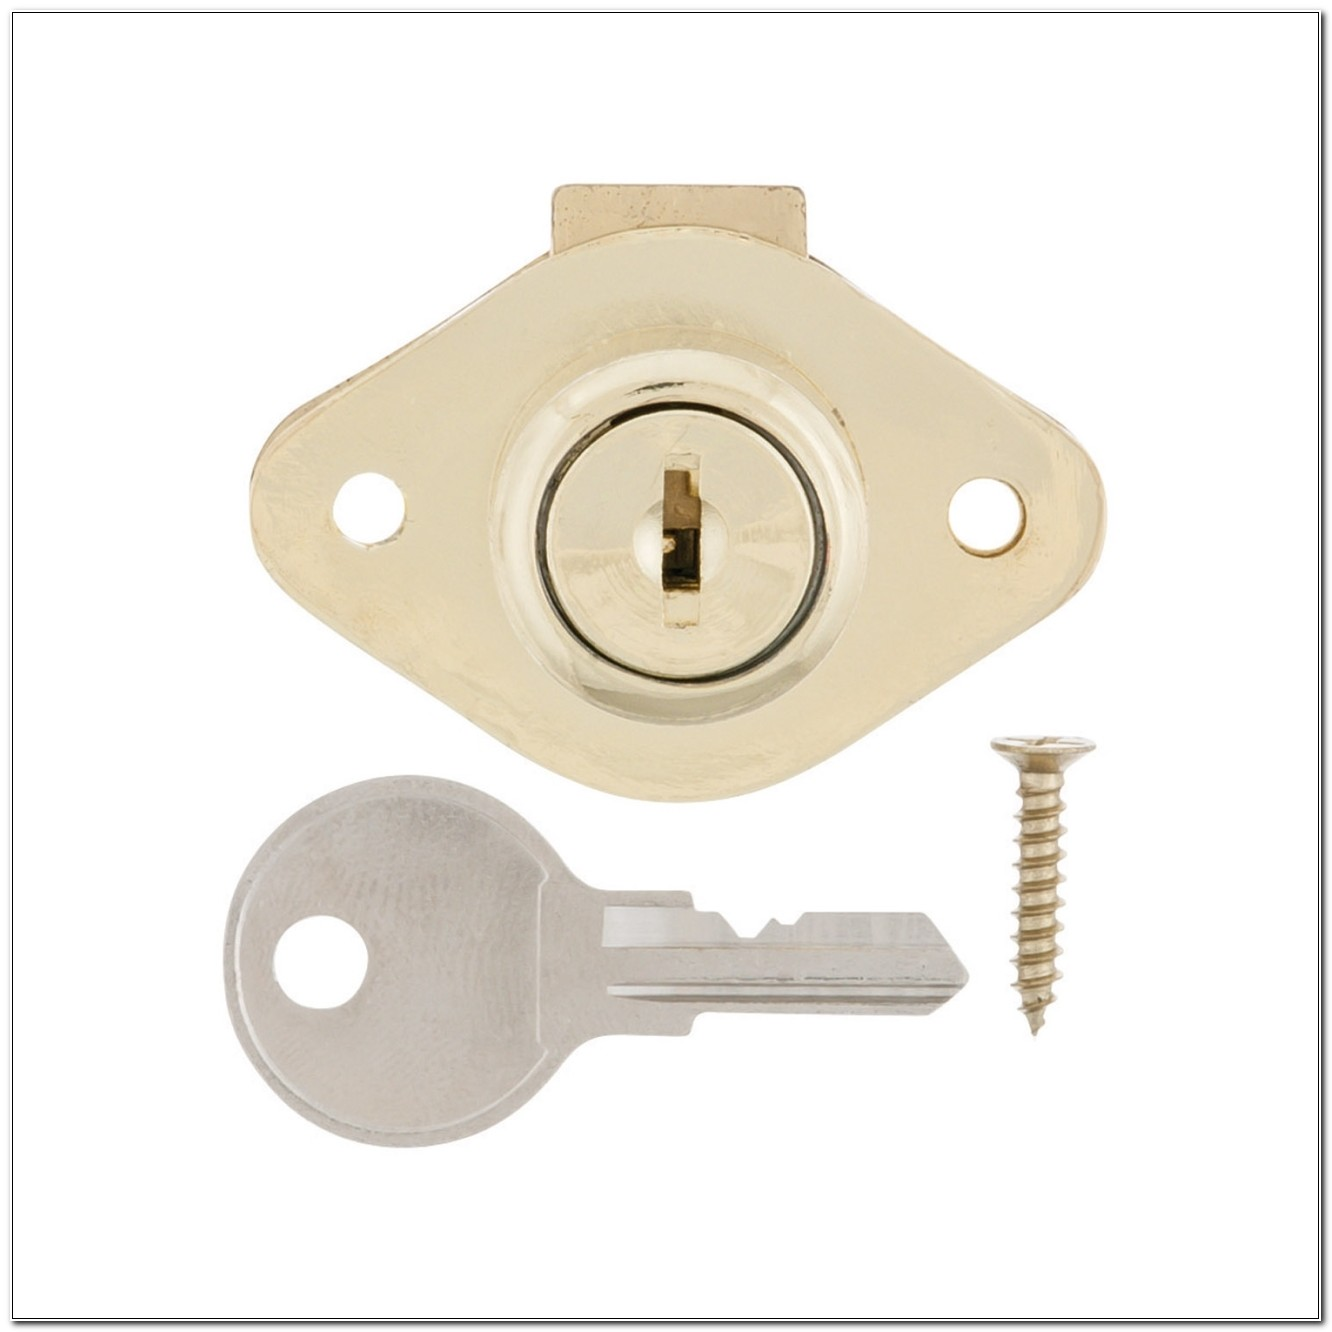 Replacement Lock For Wood File Cabinet